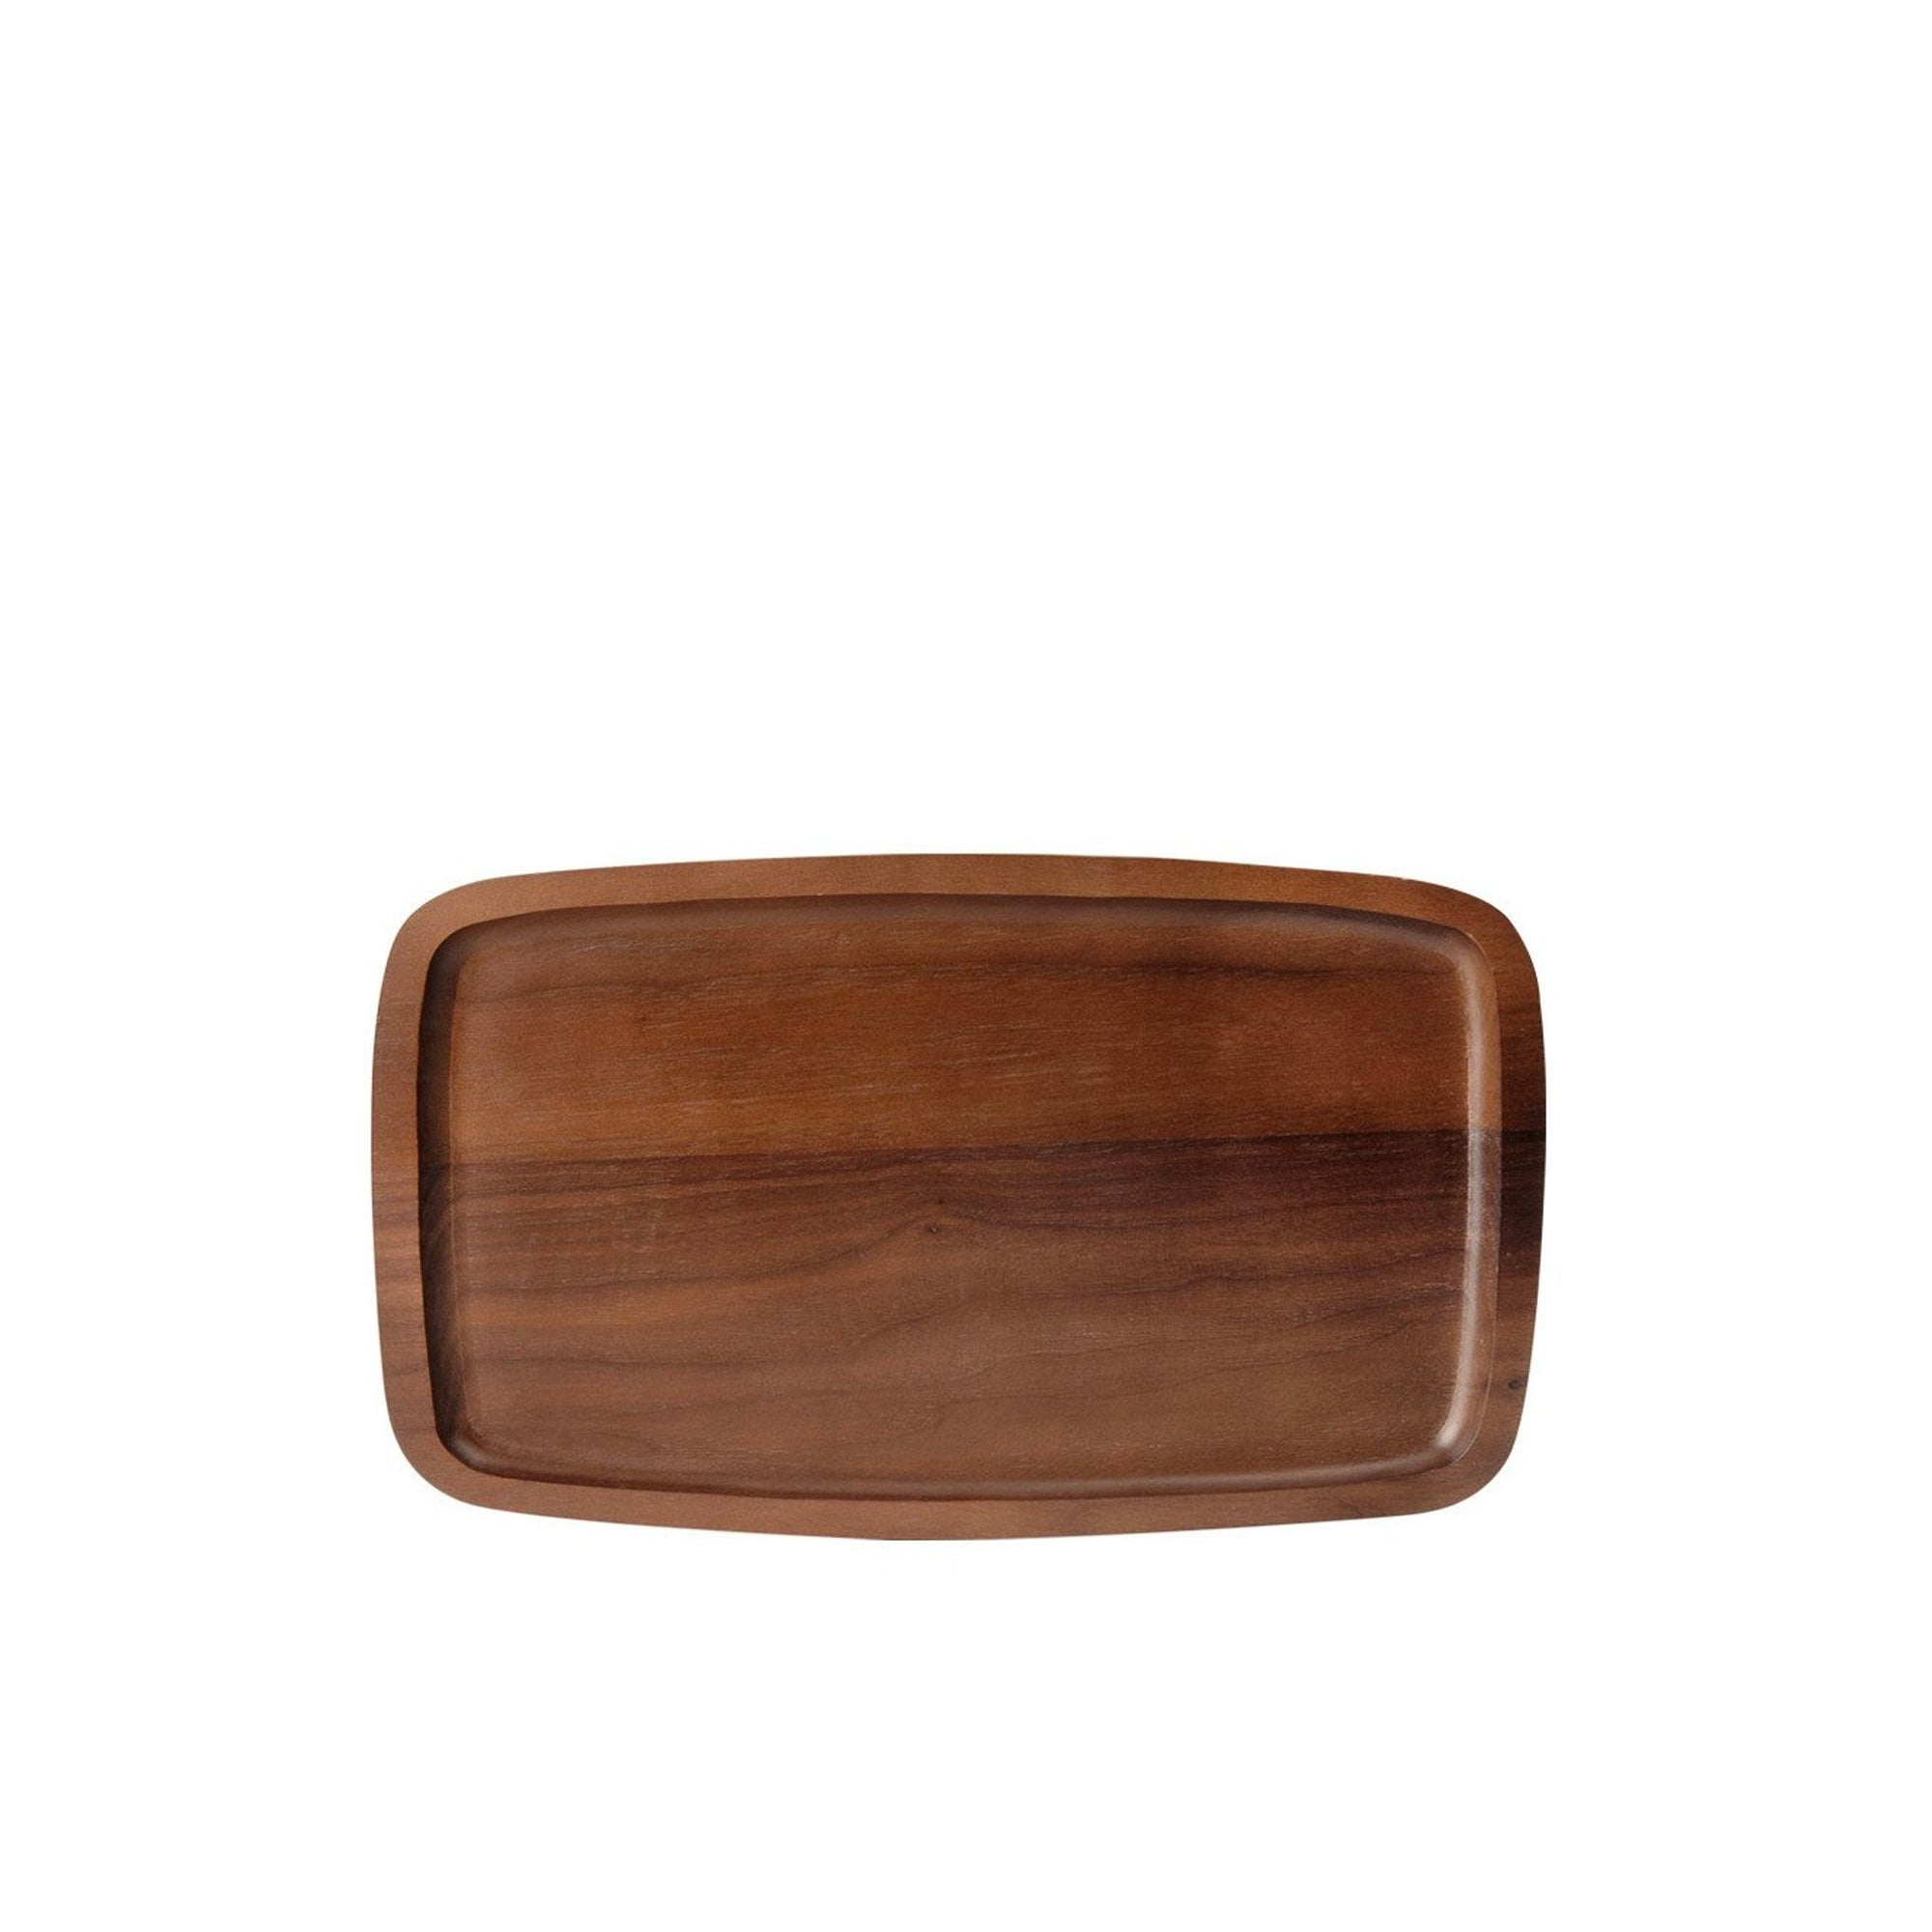 Loveramics Nordic Tray 30cm Walnut Tea Tray